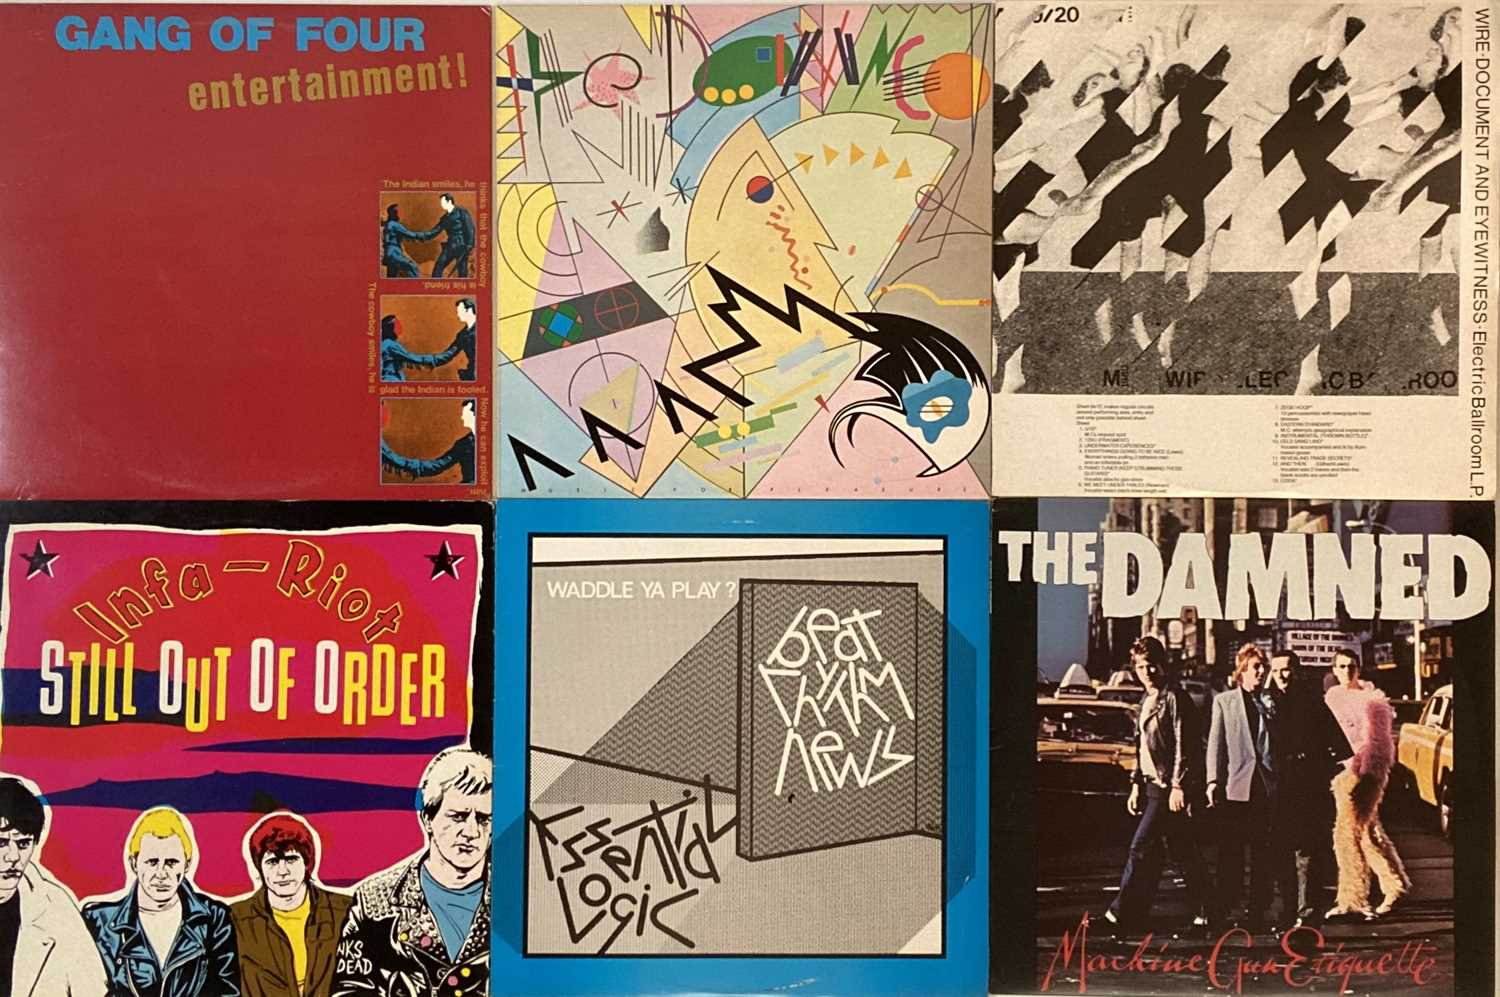 CLASSIC PUNK & NEW WAVE - LPs.